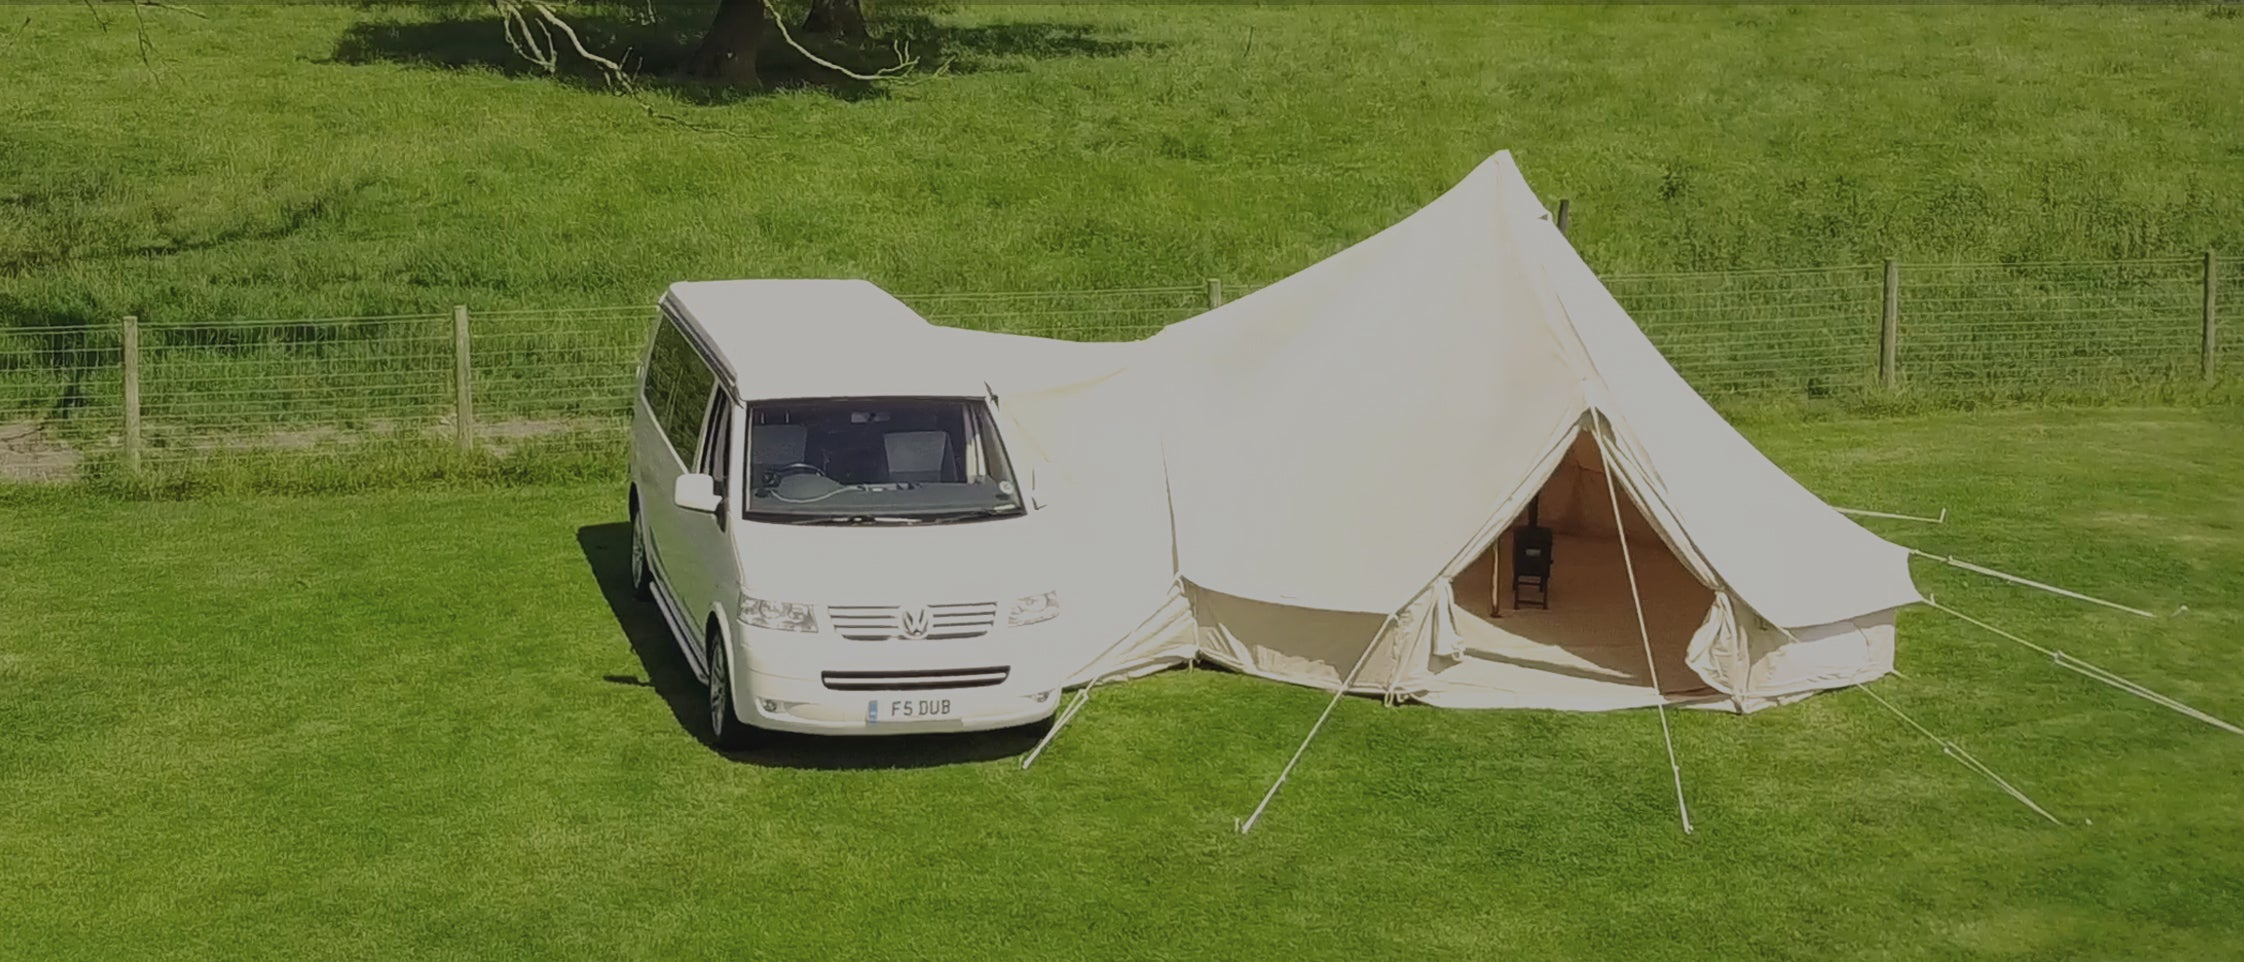 The Worldu0027s Most Glamorous Awning & Glawning | Glamorous Driveaway Bell Tent Awnings u2013 glawning